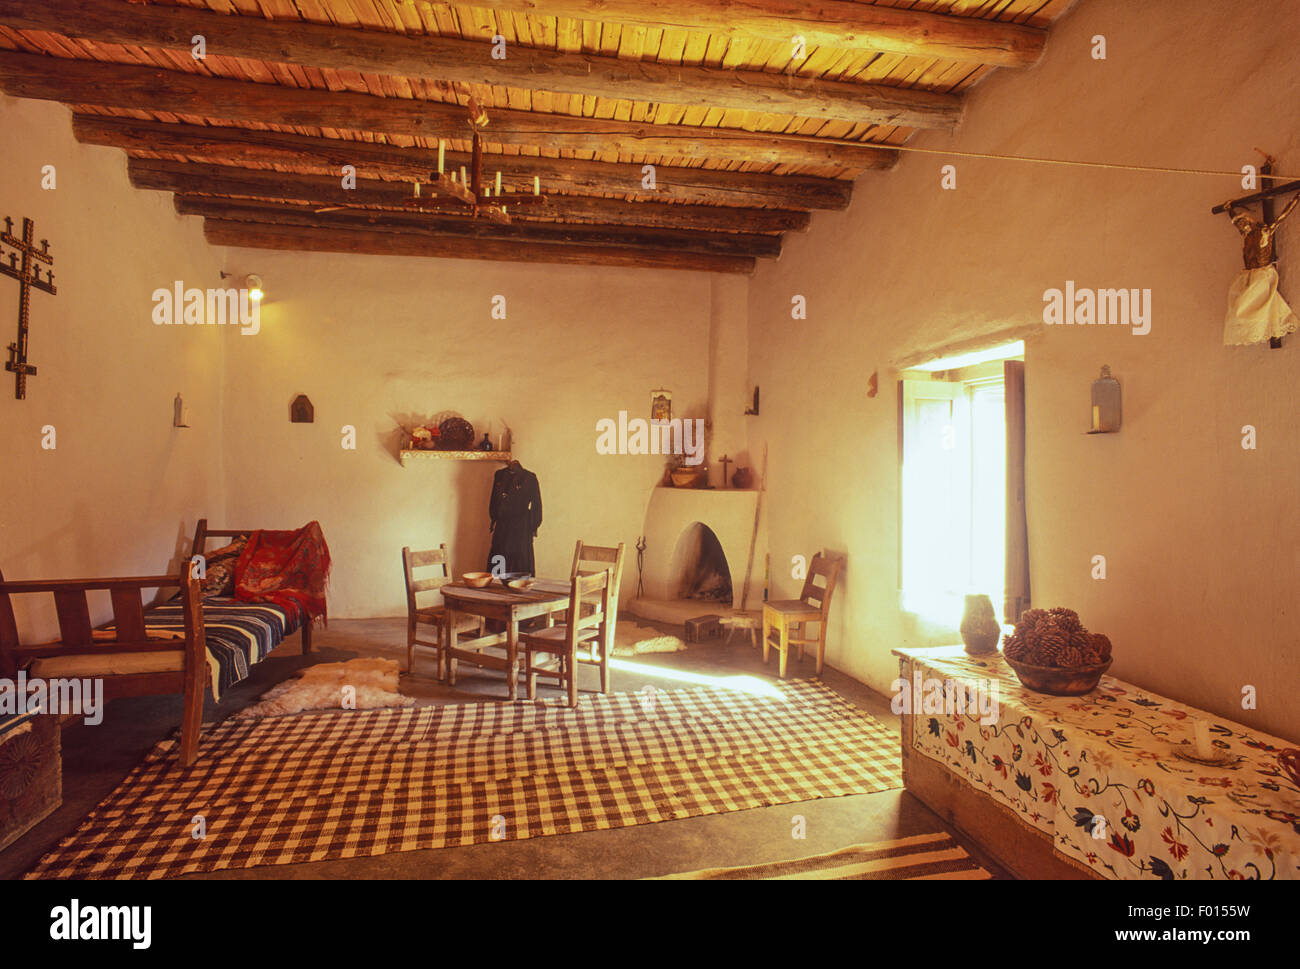 living room, Martinez Adobe, Taos, New Mexico Stock Photo ...